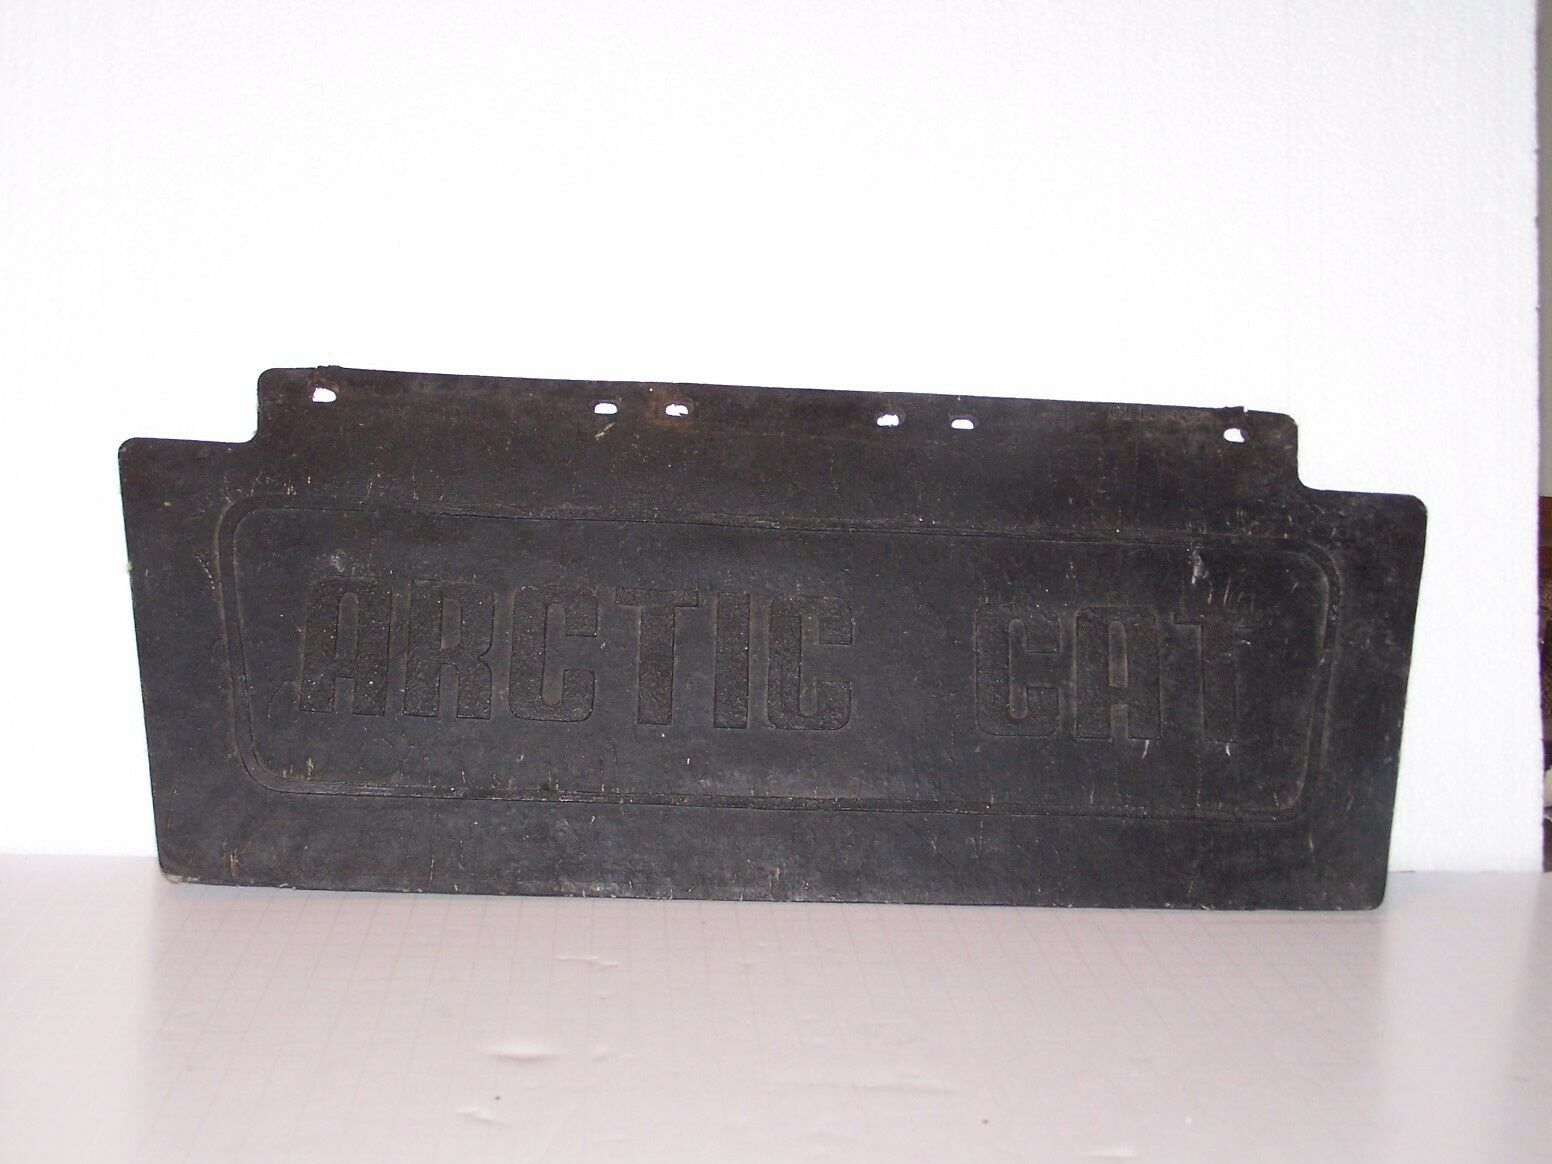 """19"""" X 8"""" X 1/4"""" thick marked Arctic Cat rear mud flap ?? used with some damage"""